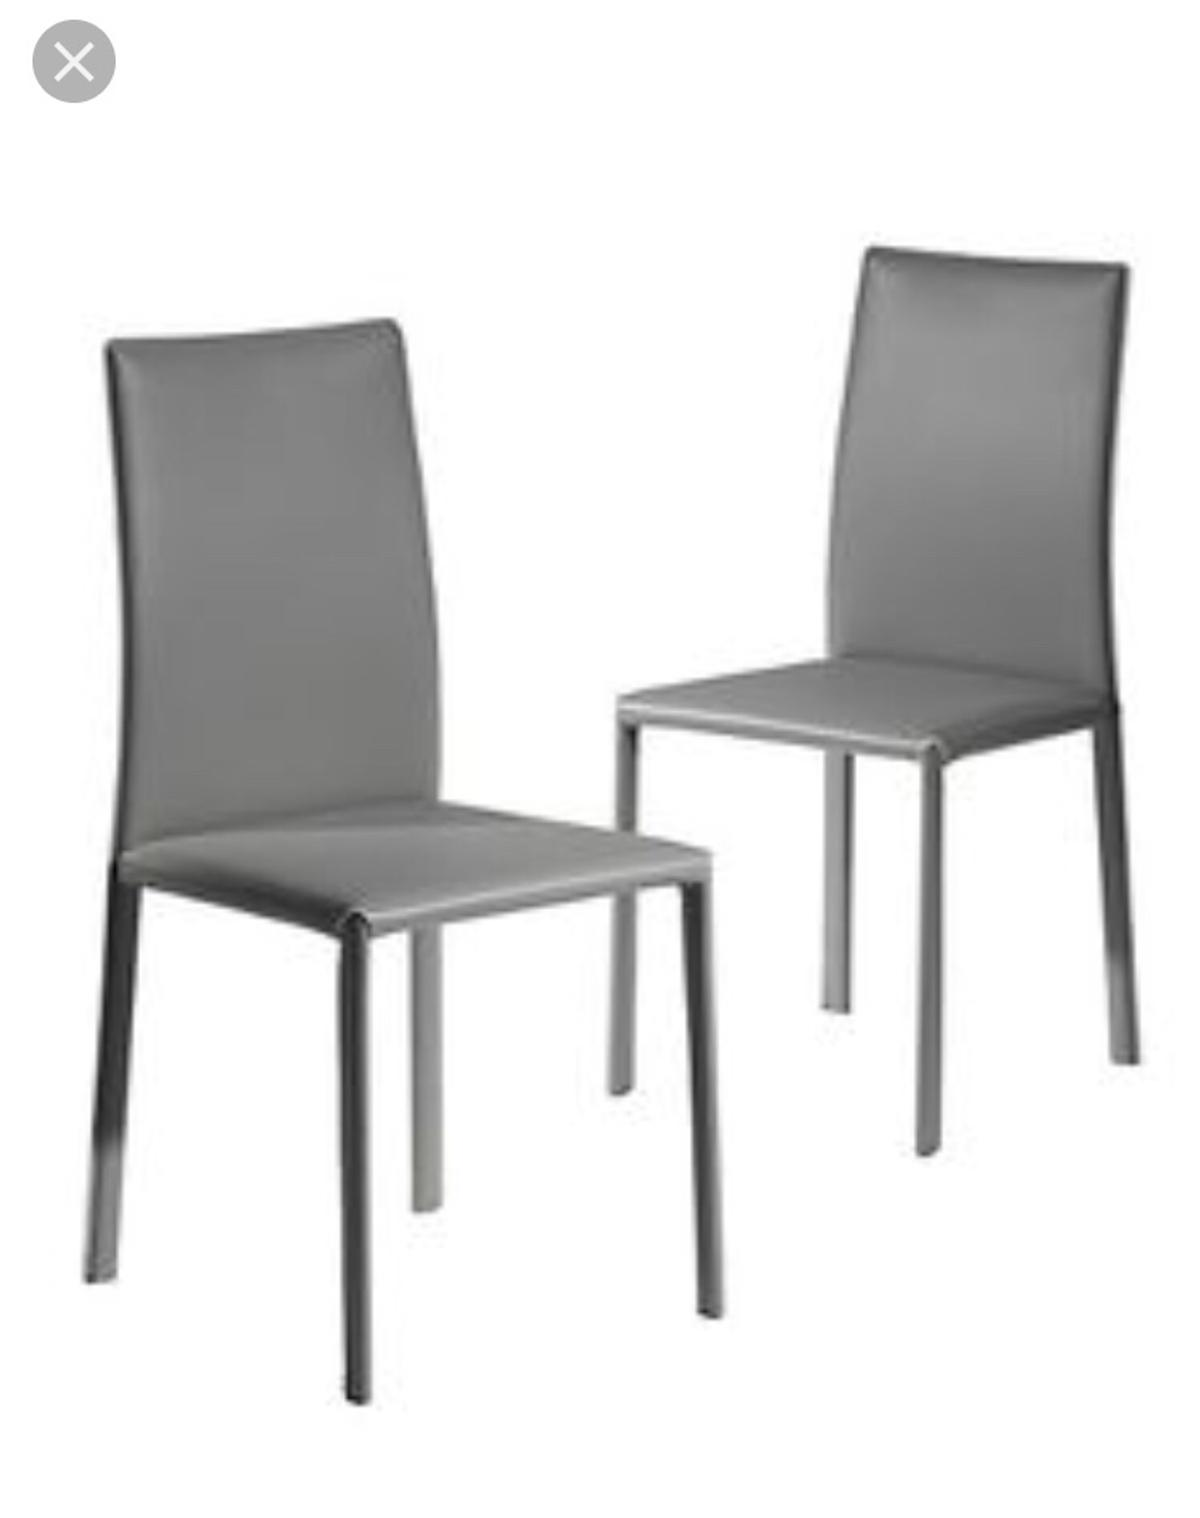 Magnificent 2X John Lewis Dominique Leather Dining Chair Gmtry Best Dining Table And Chair Ideas Images Gmtryco